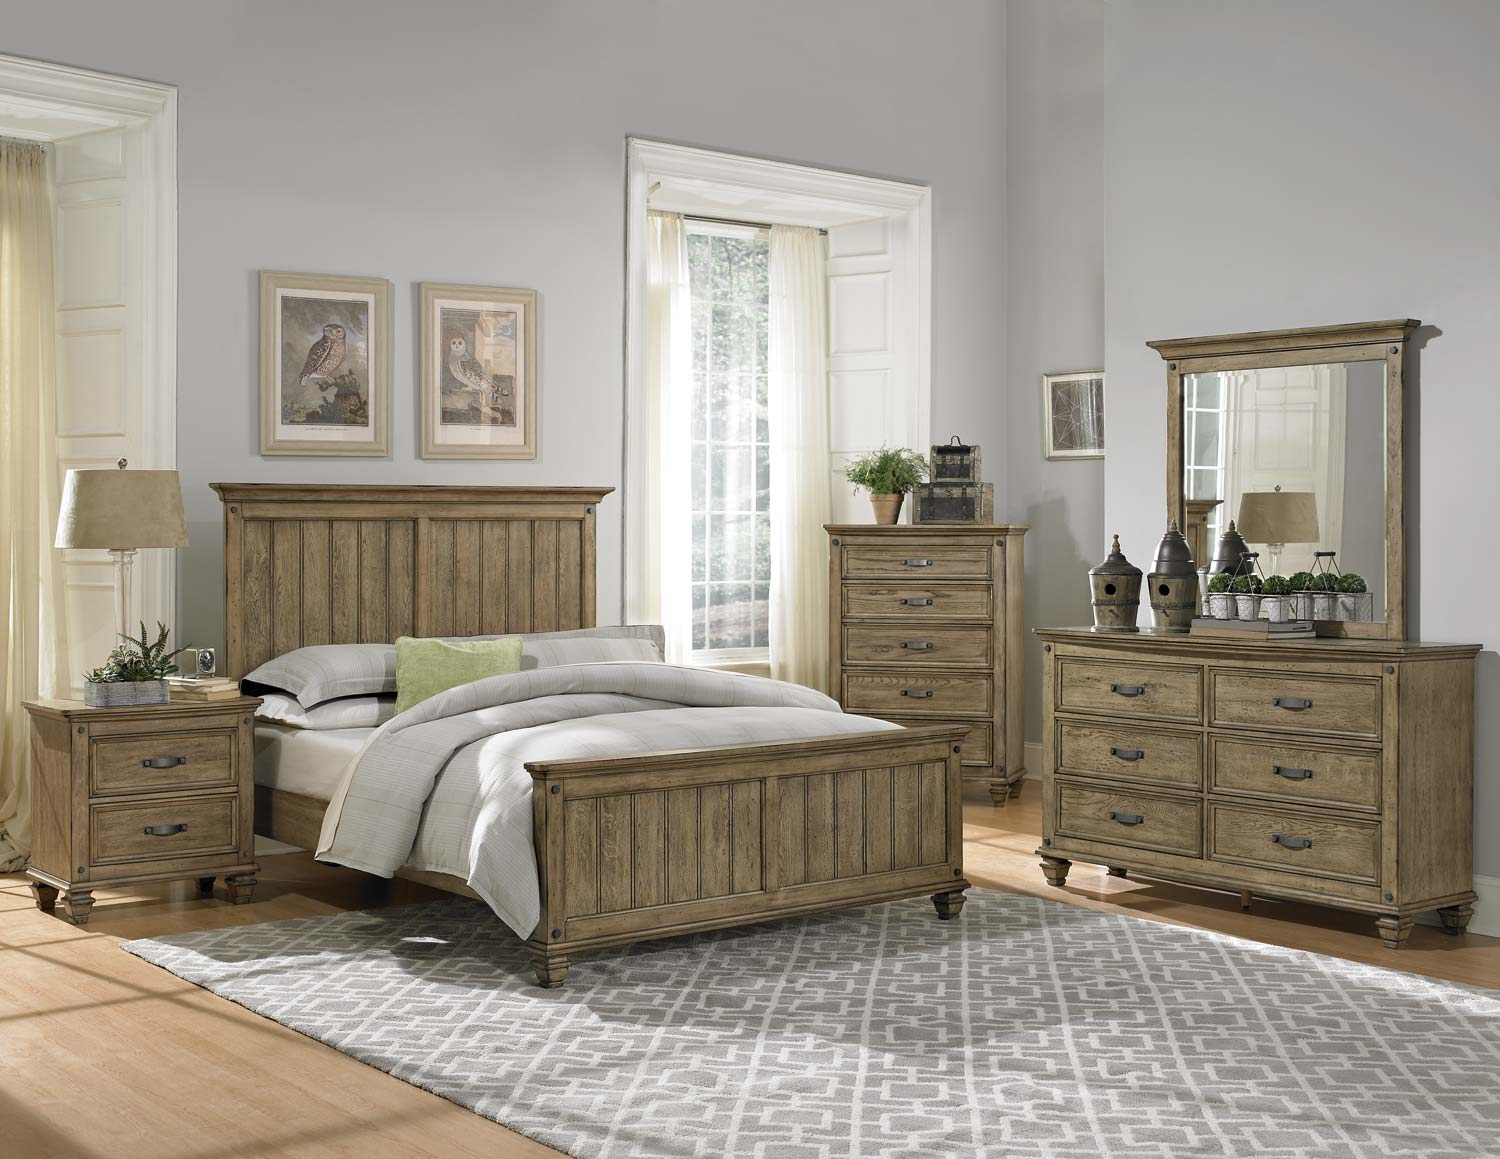 Image of: Riverside Driftwood Bedroom Furniture